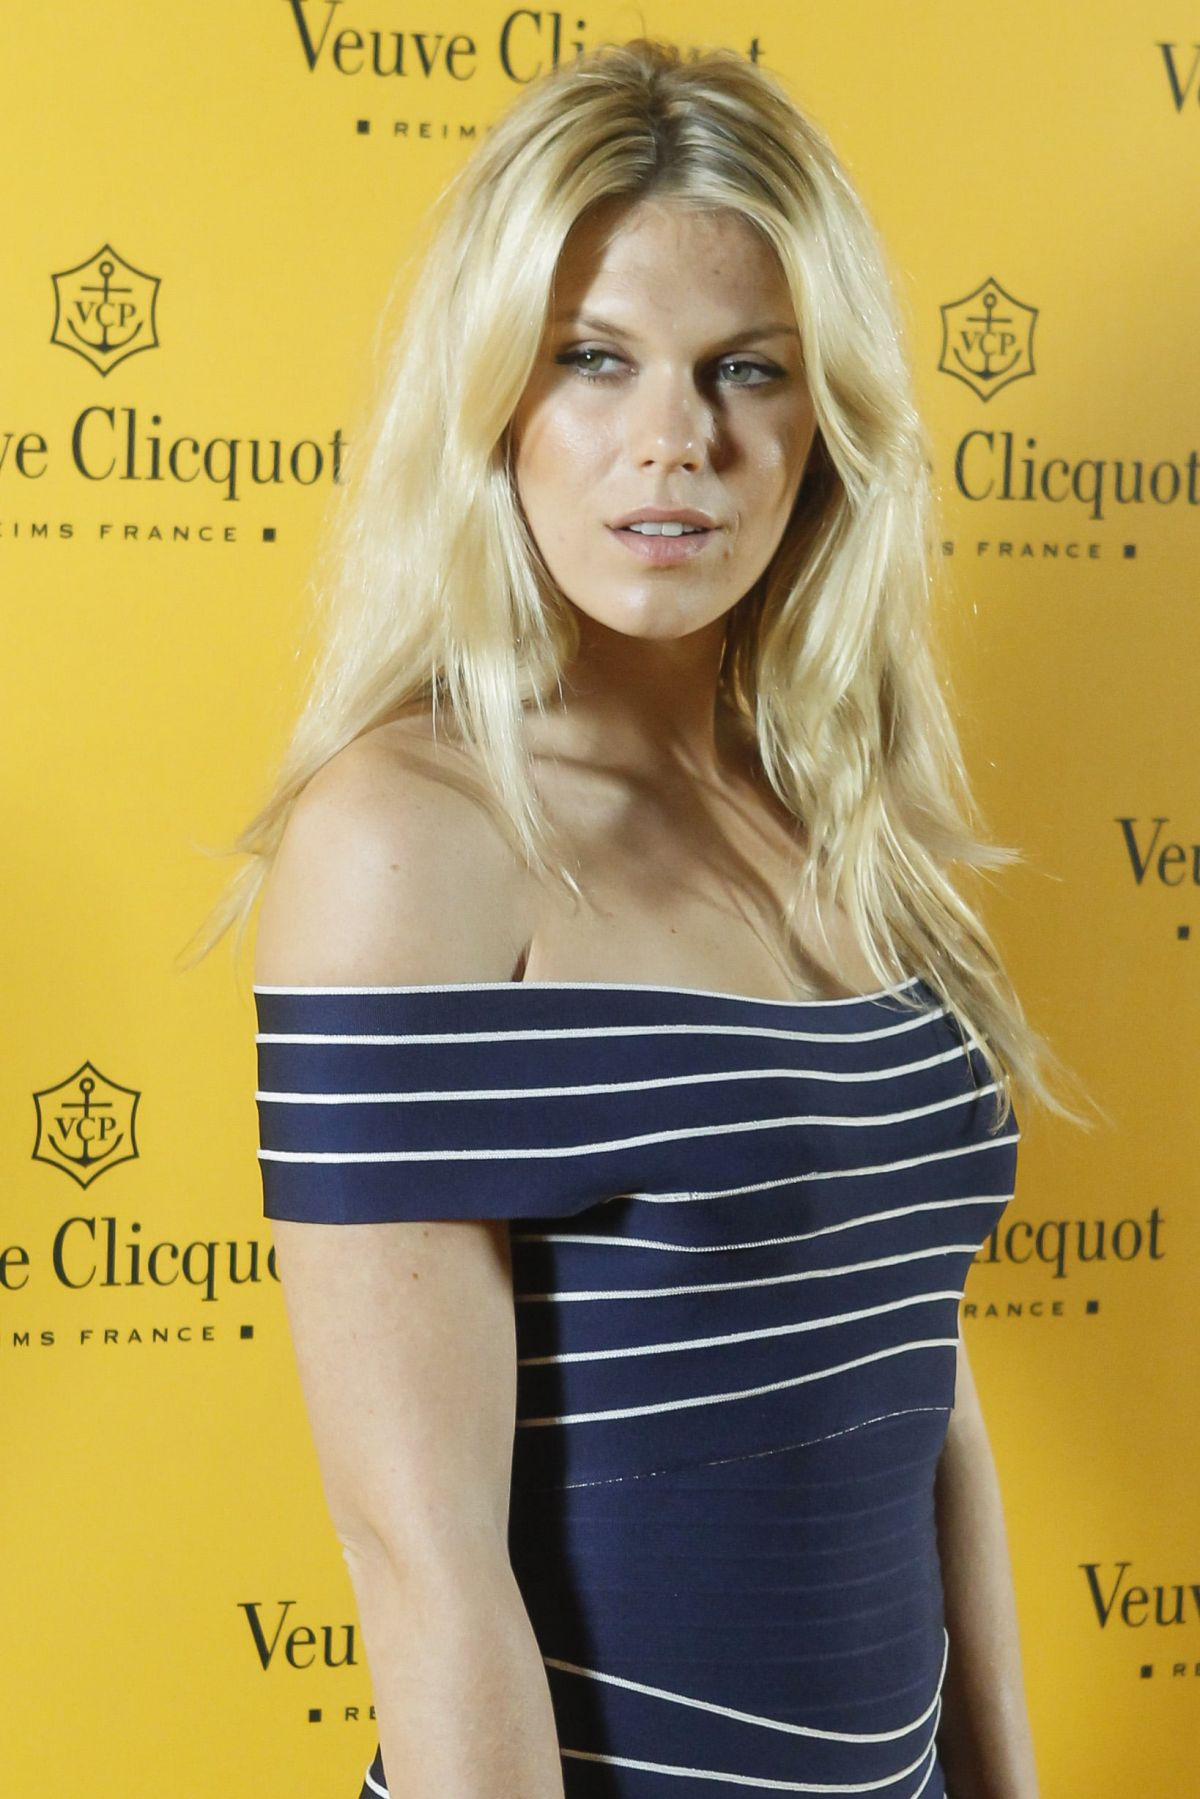 ALEXANDRA RICHARDS at Veuve Clicquot Yelloween Party at Teatro Bodevill in Madrid 10/29/